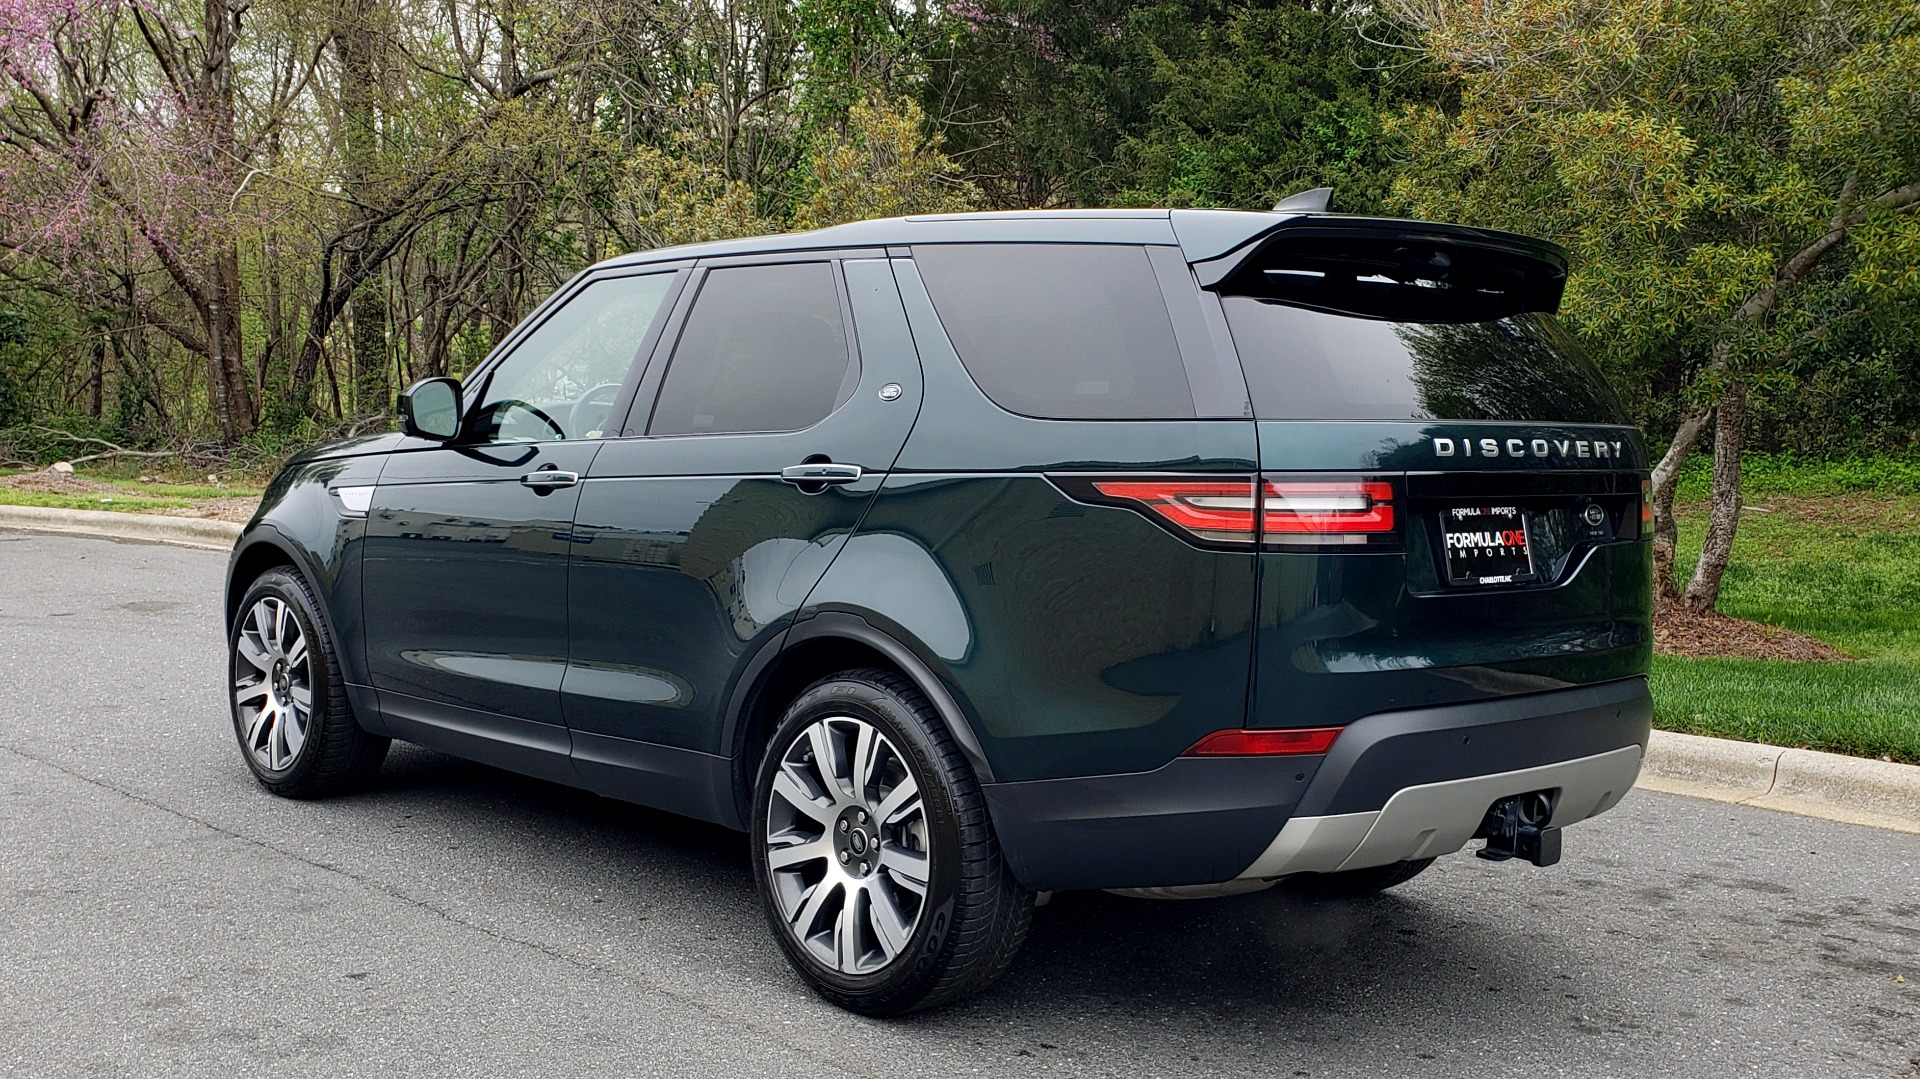 Used 2017 Land Rover DISCOVERY HSE LUXURY / 4WD / NAV / VISION ASST / DRIVE PKG / MERIDIAN for sale Sold at Formula Imports in Charlotte NC 28227 4